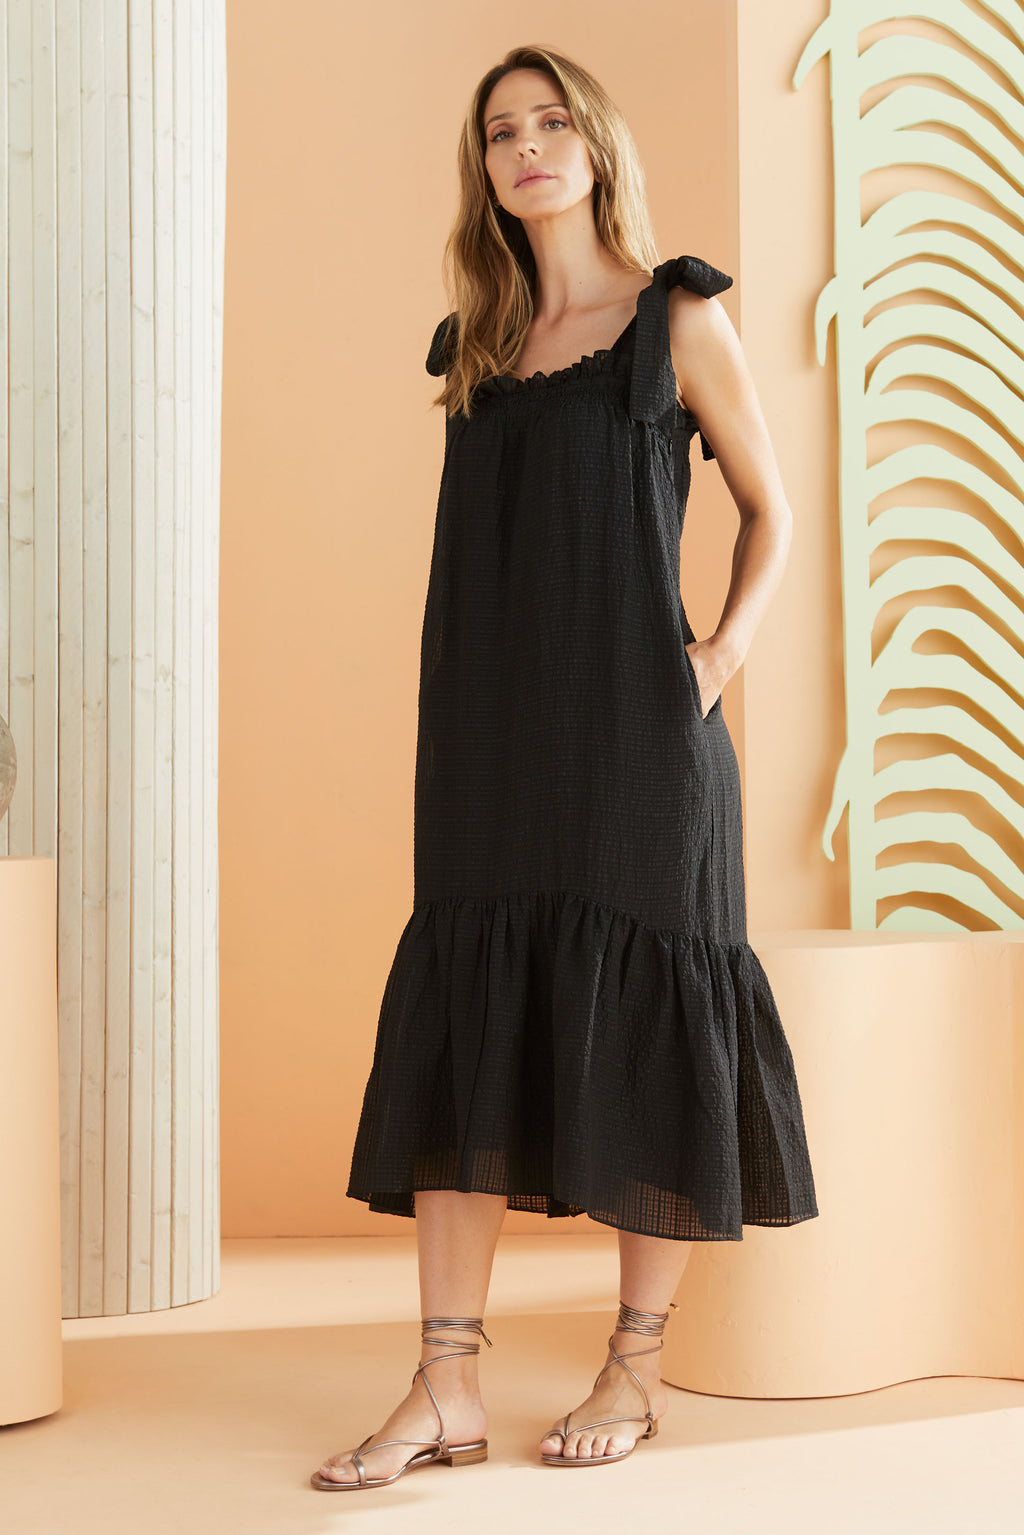 Midi Sleeveless dress with pockets in our bold black